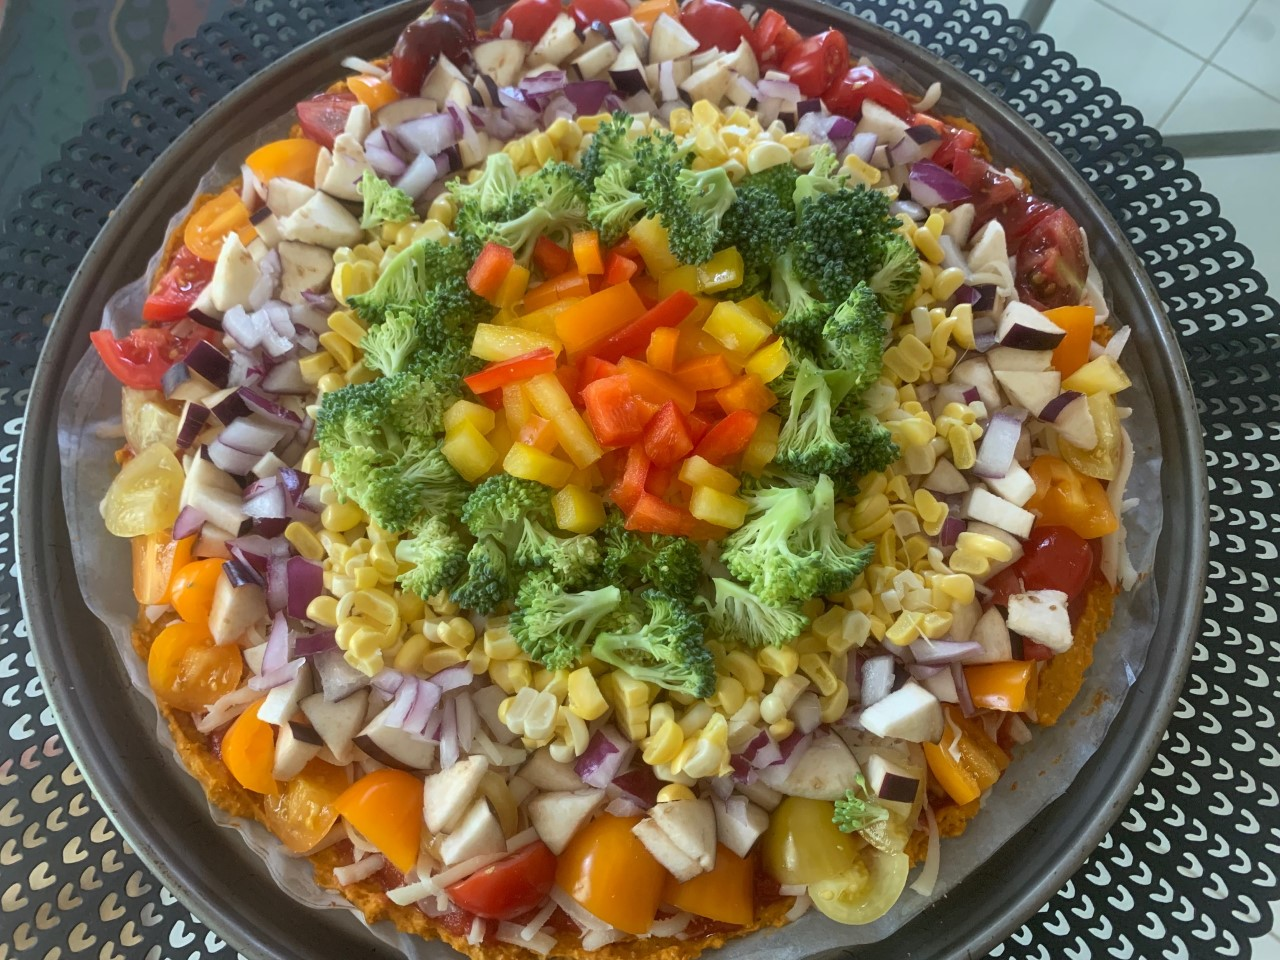 Rainbow Pizza with a sweet potato crust, bell peppers, corn, onions, butternut squash, eggplant, and broccoli